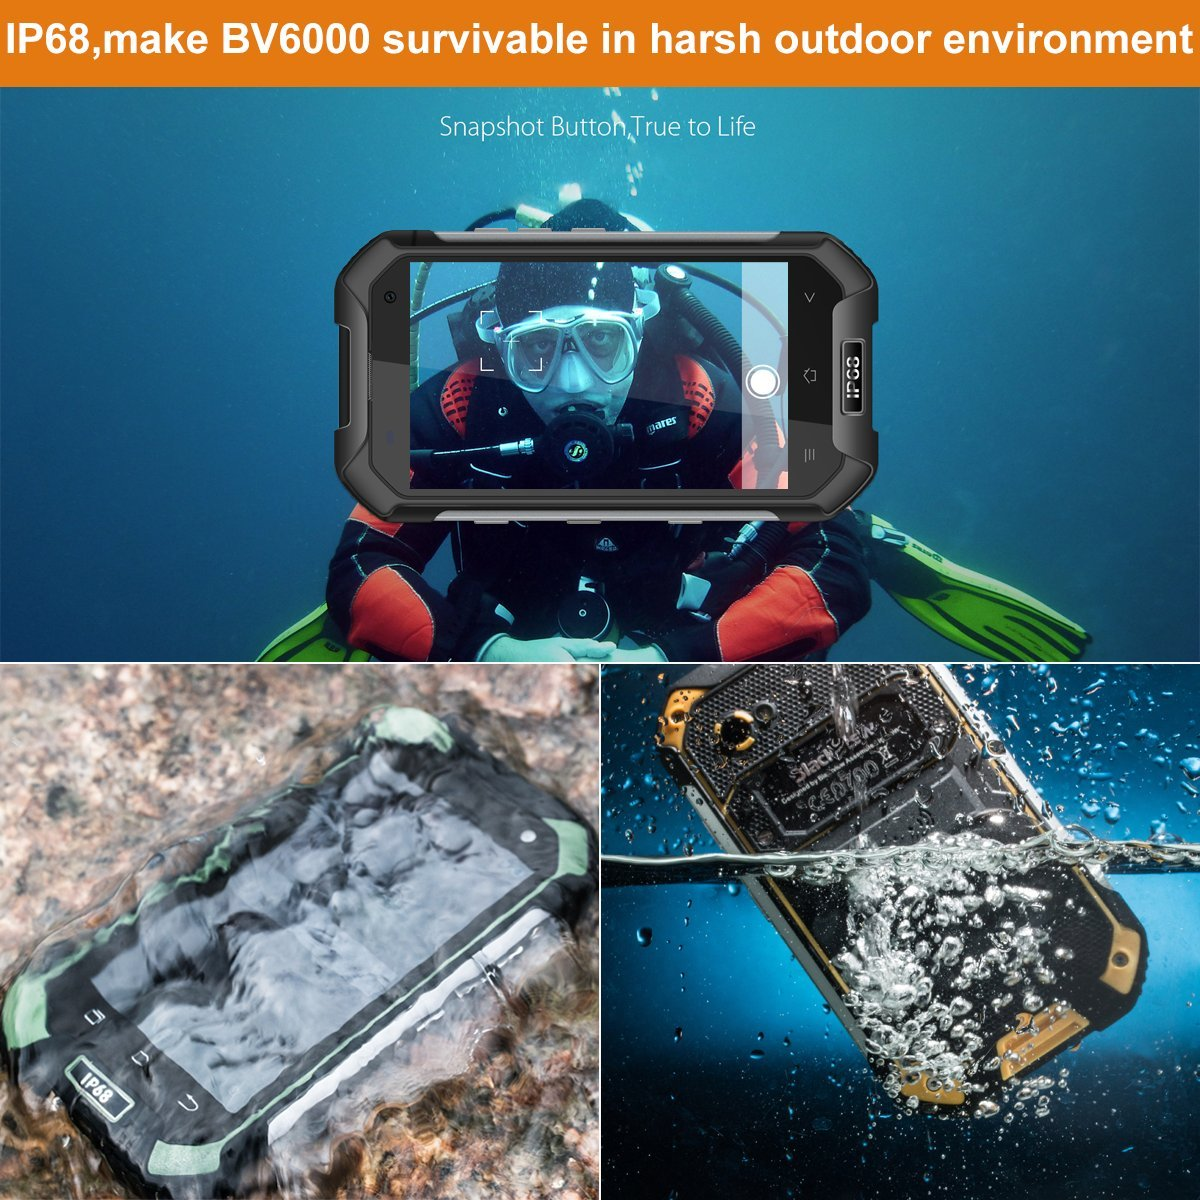 Waterproof Mobile Phones Blackview Bv6000 47 Inch Ip68 Tri Proof Vo 2gb Smart Unlocked 2g 3g 4g Android 70 Octa Core 3gb Ram 32gb Rom 45000mah Hd